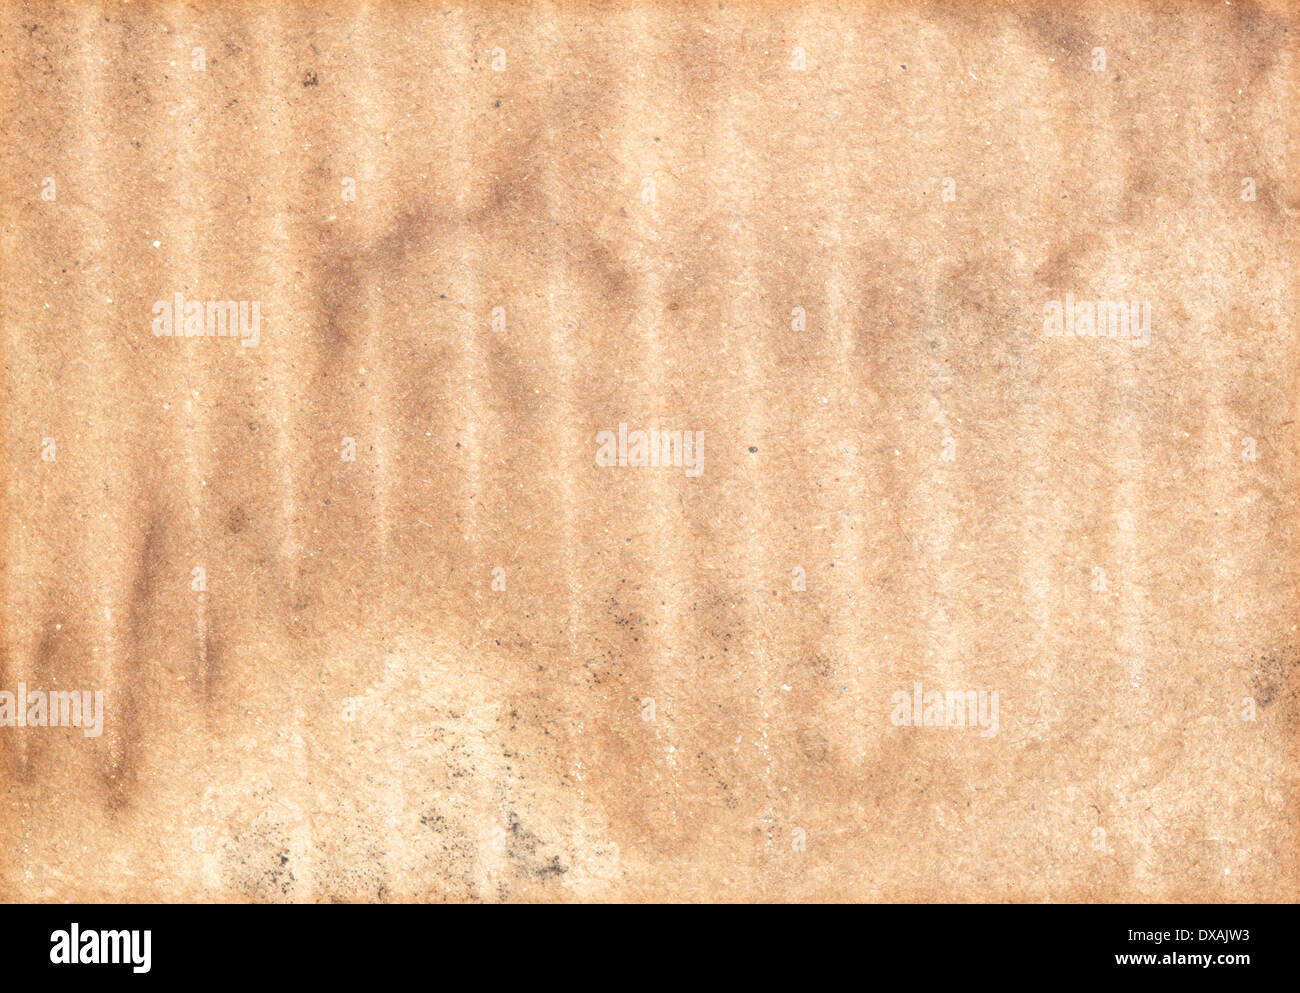 Vintage Paper With Space For Text Or Image - Stock Image